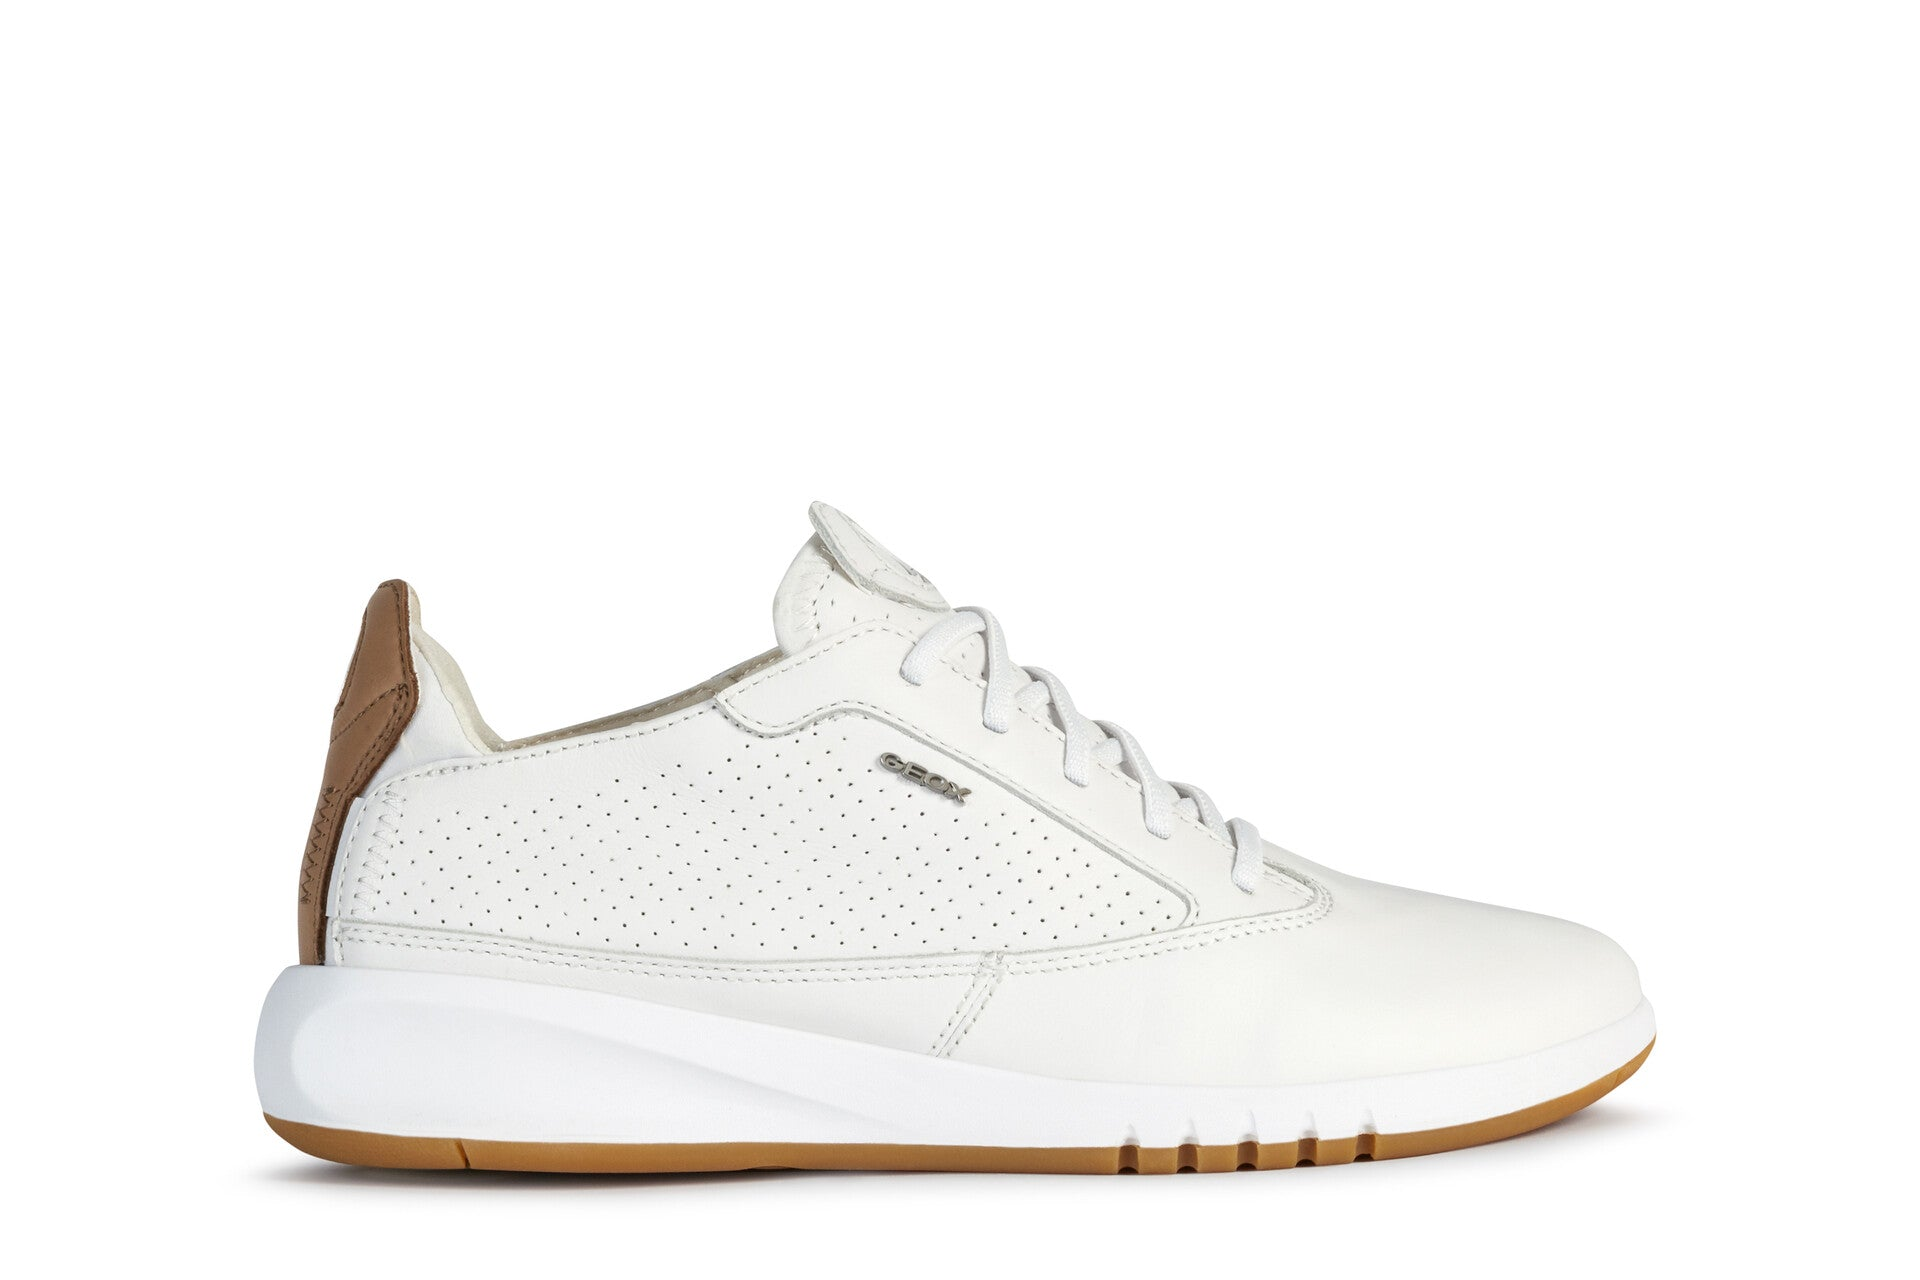 Geox Aerantis Ladies White Leather Casual Lace Up Sneaker